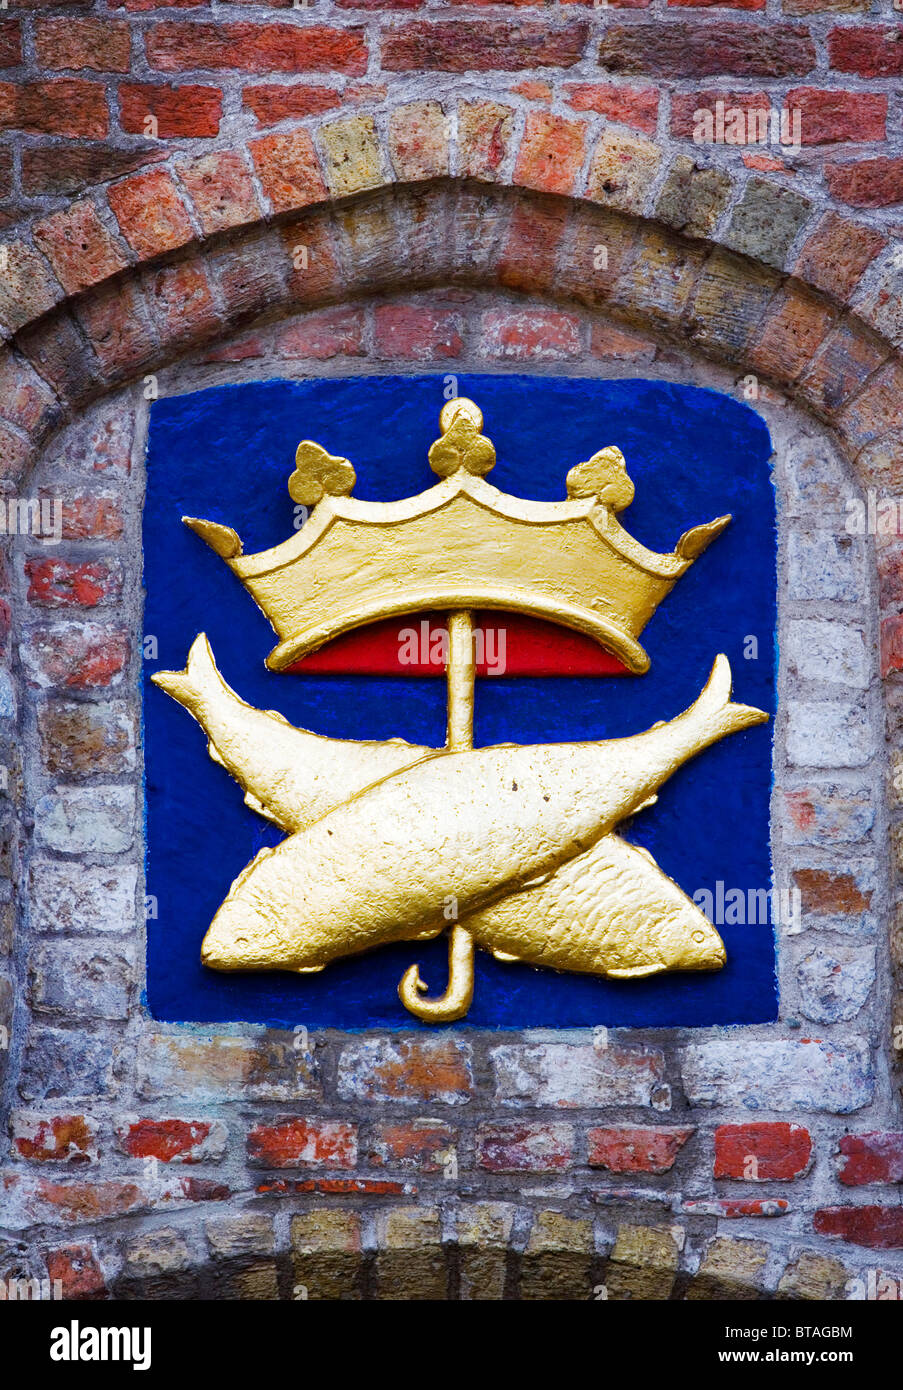 Historic gold sign, crown, fish-hook & crossed fish, Bruges, Belgium, Europe - Stock Image